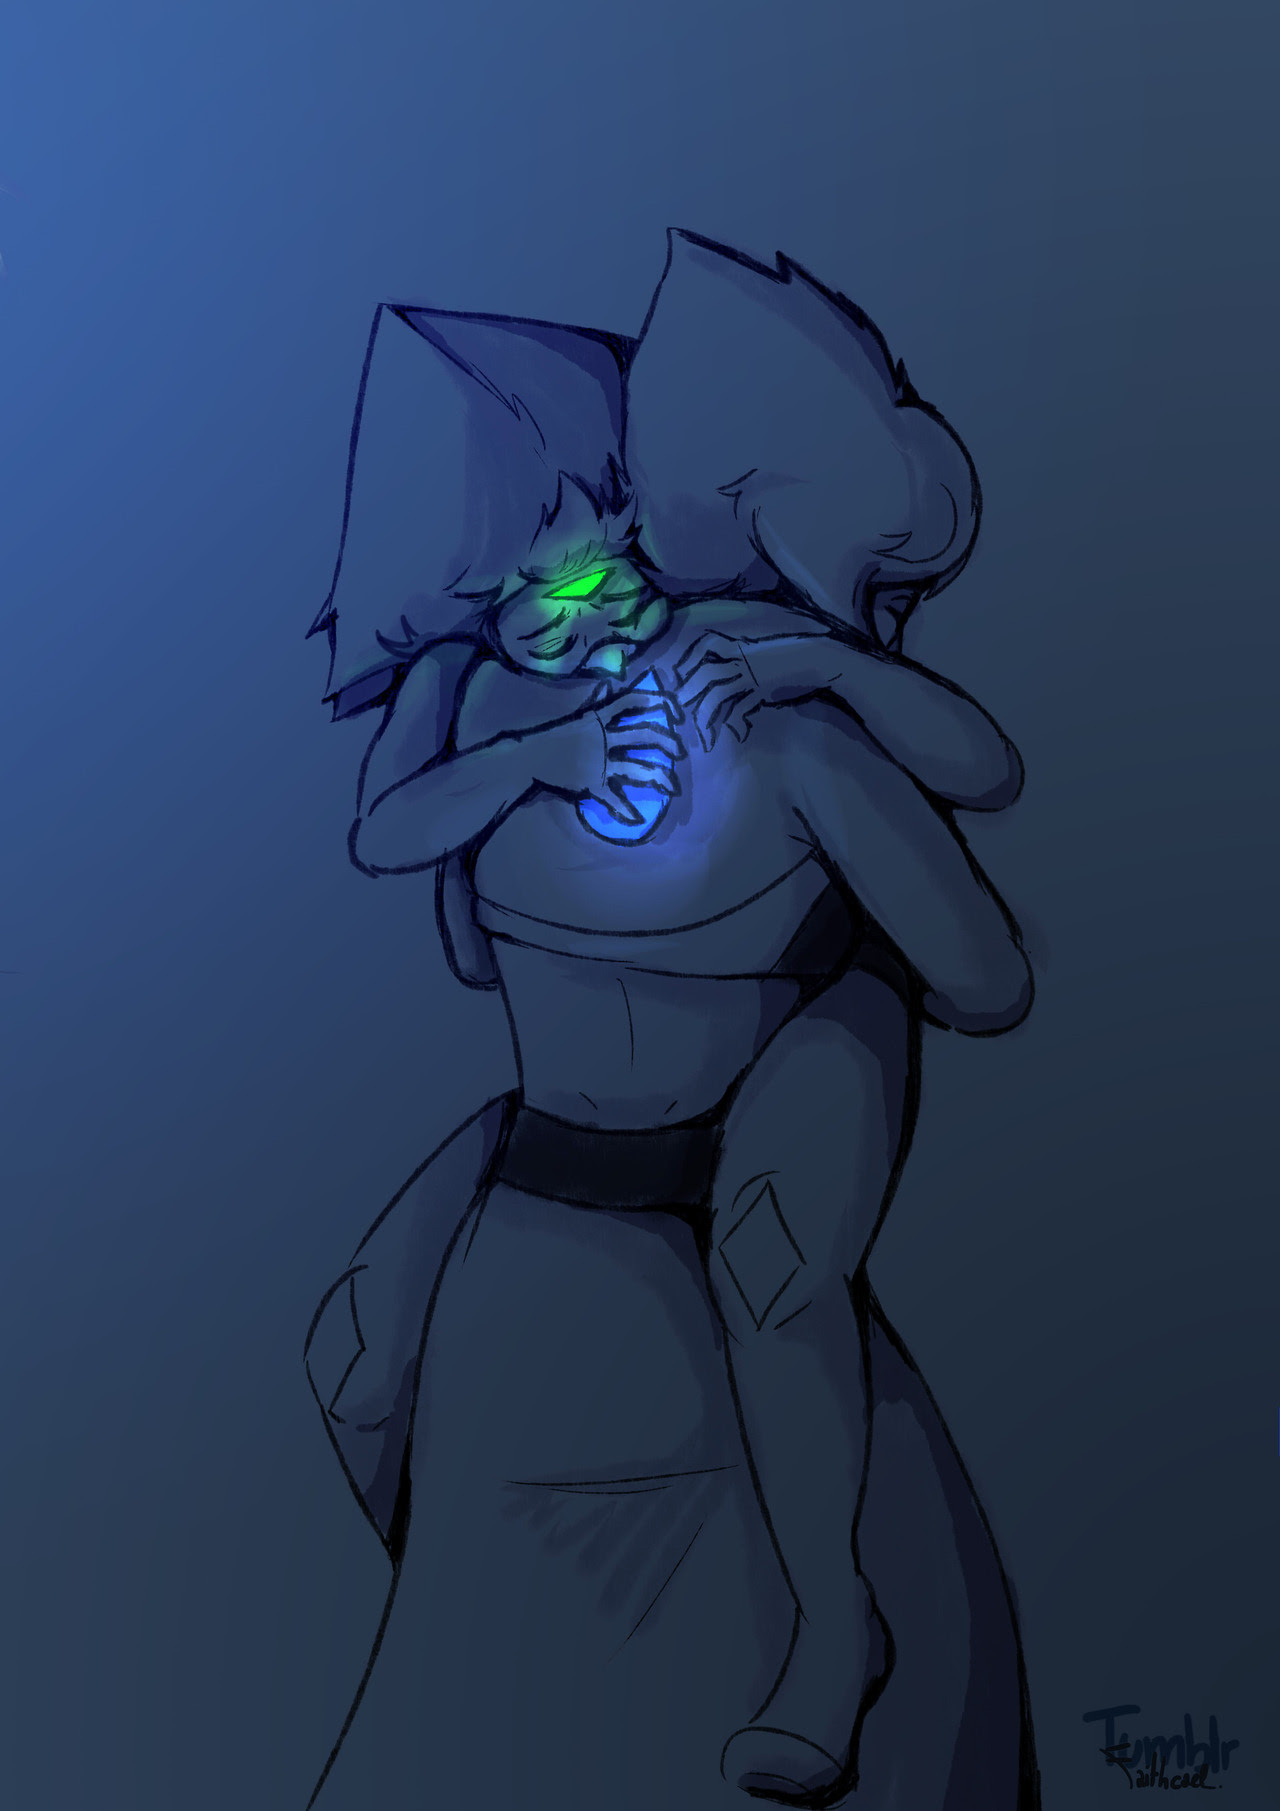 Fluff and gem touching tonight ! I'm totally fond of the sensitive gems headcanon, it's kind of sweet !